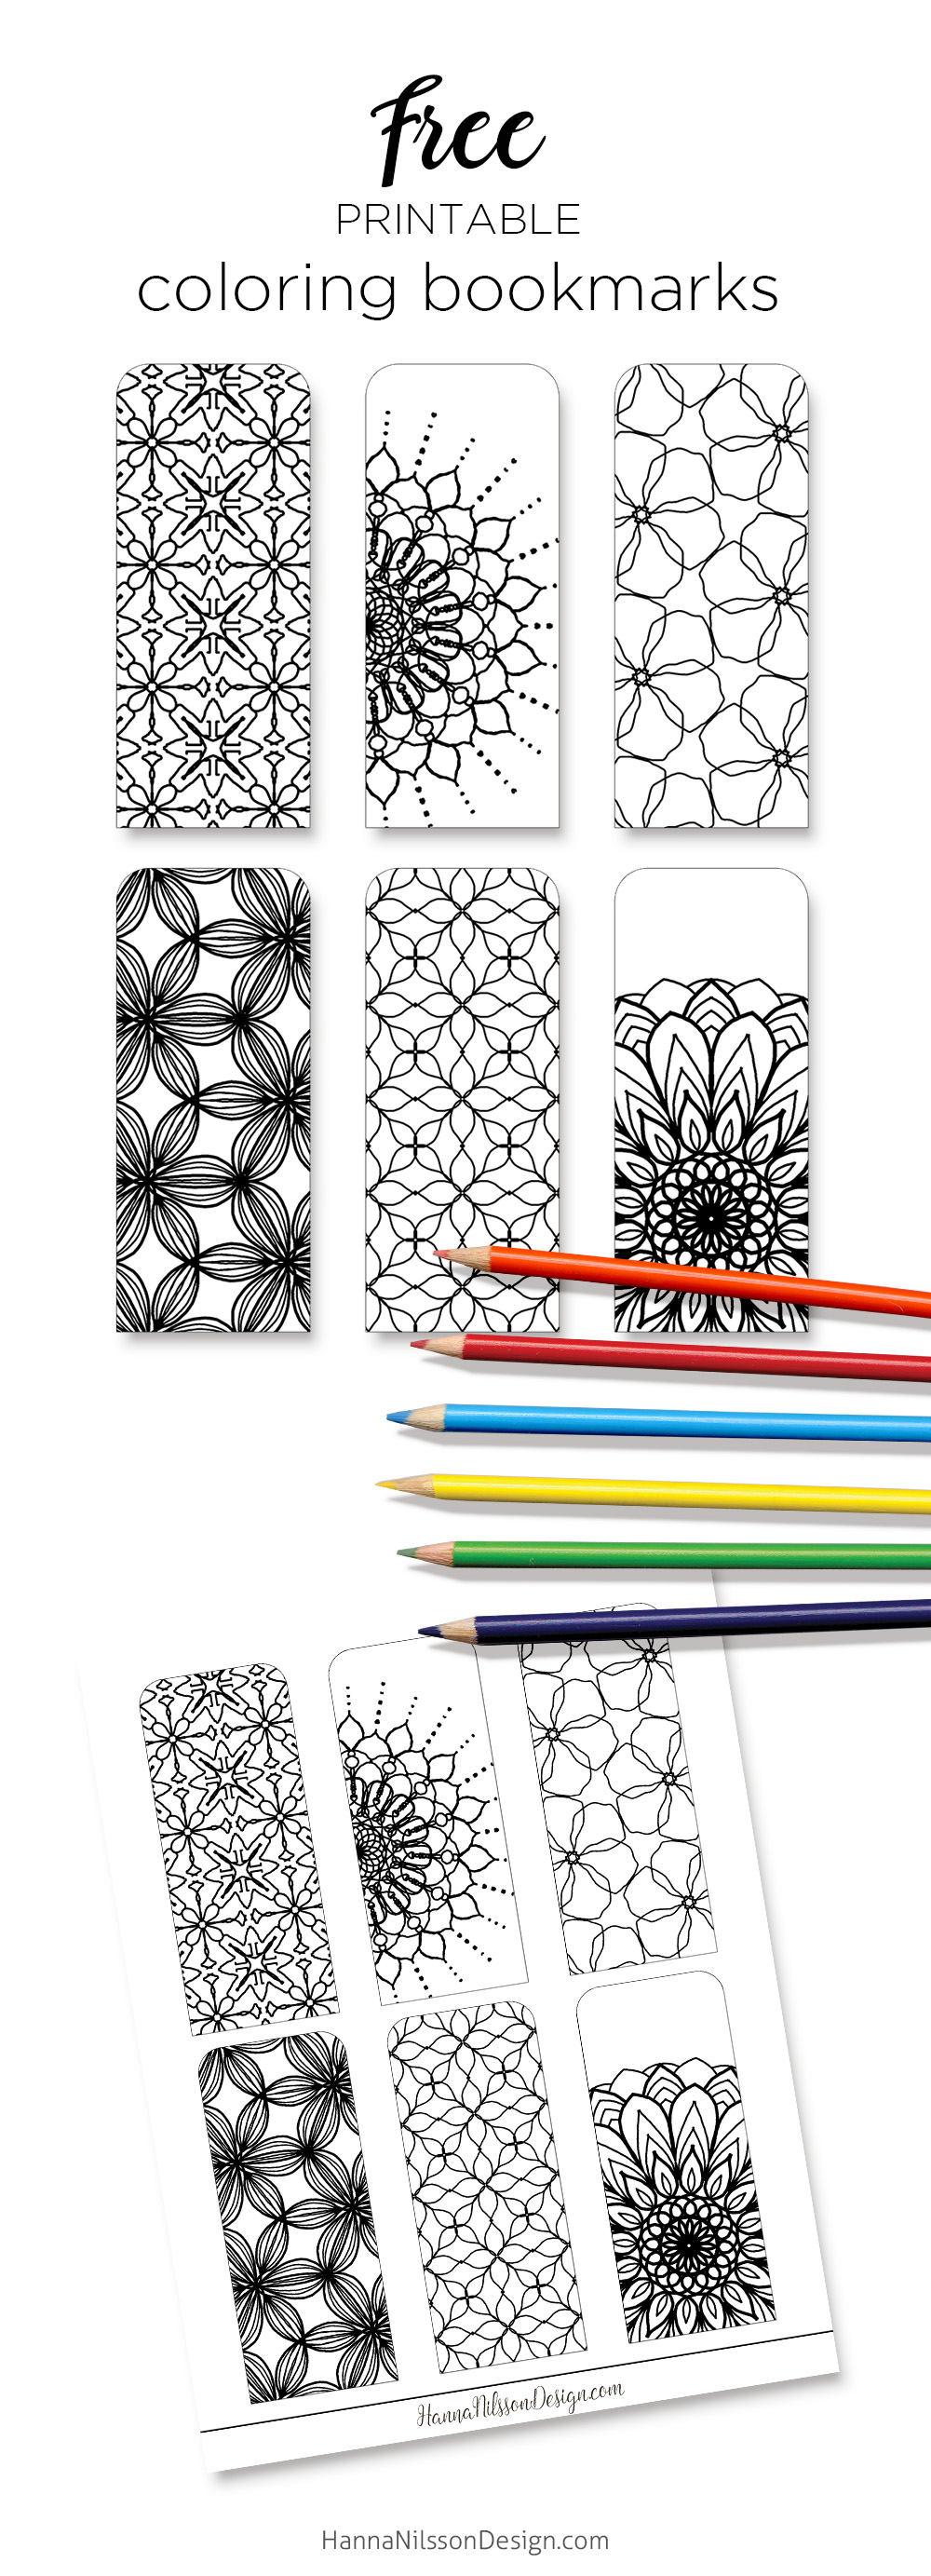 photo regarding Printable Coloring Bookmarks named Coloring bookmarks print, shade and examine Hanna Nilsson